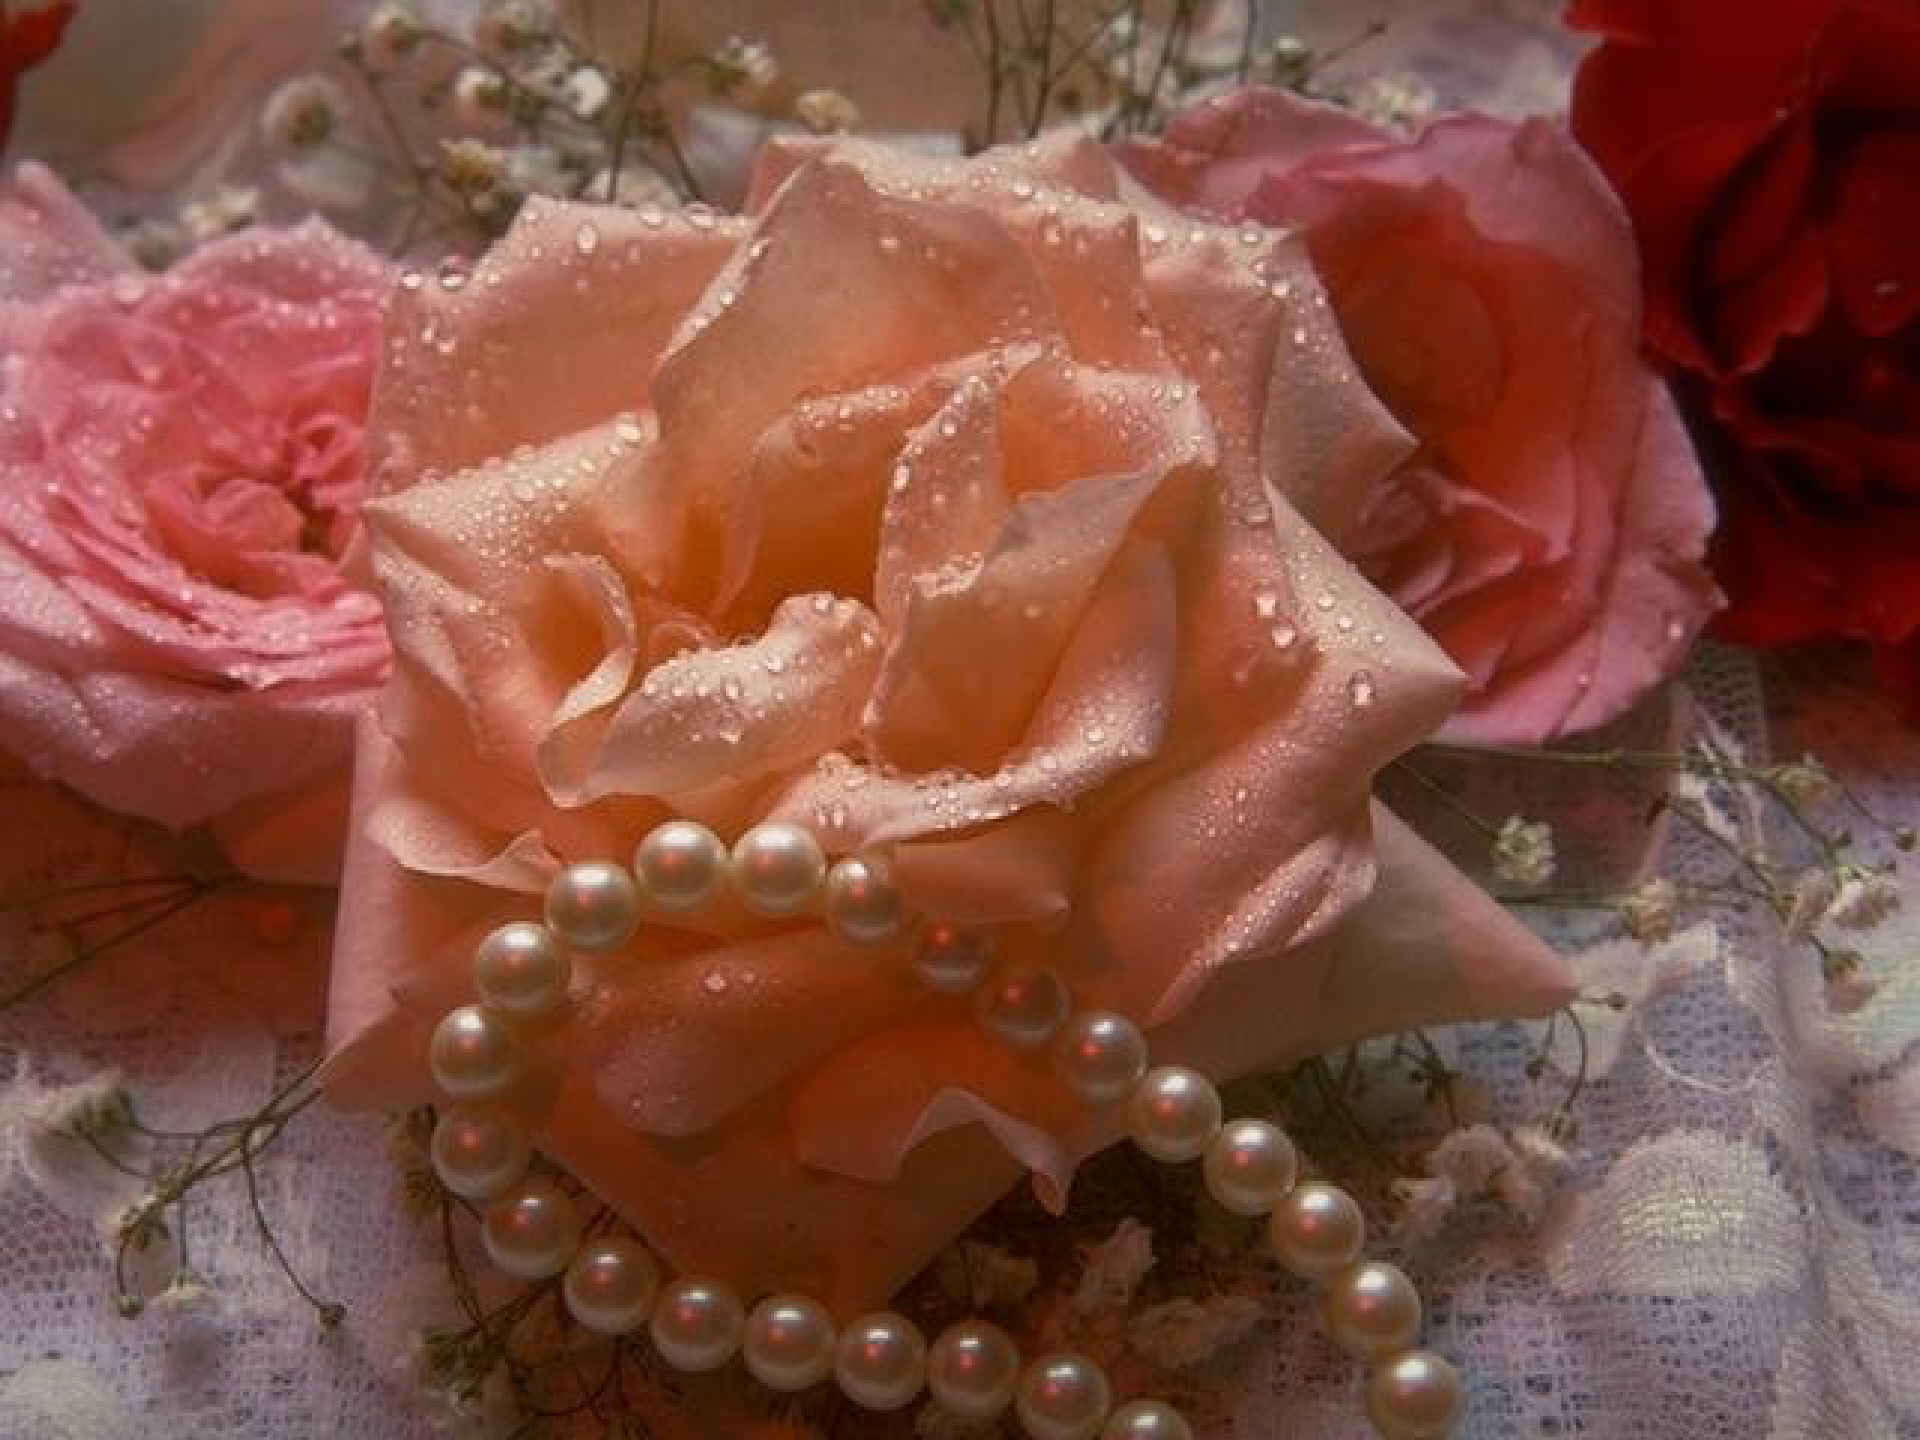 roses and pearls - photo #10